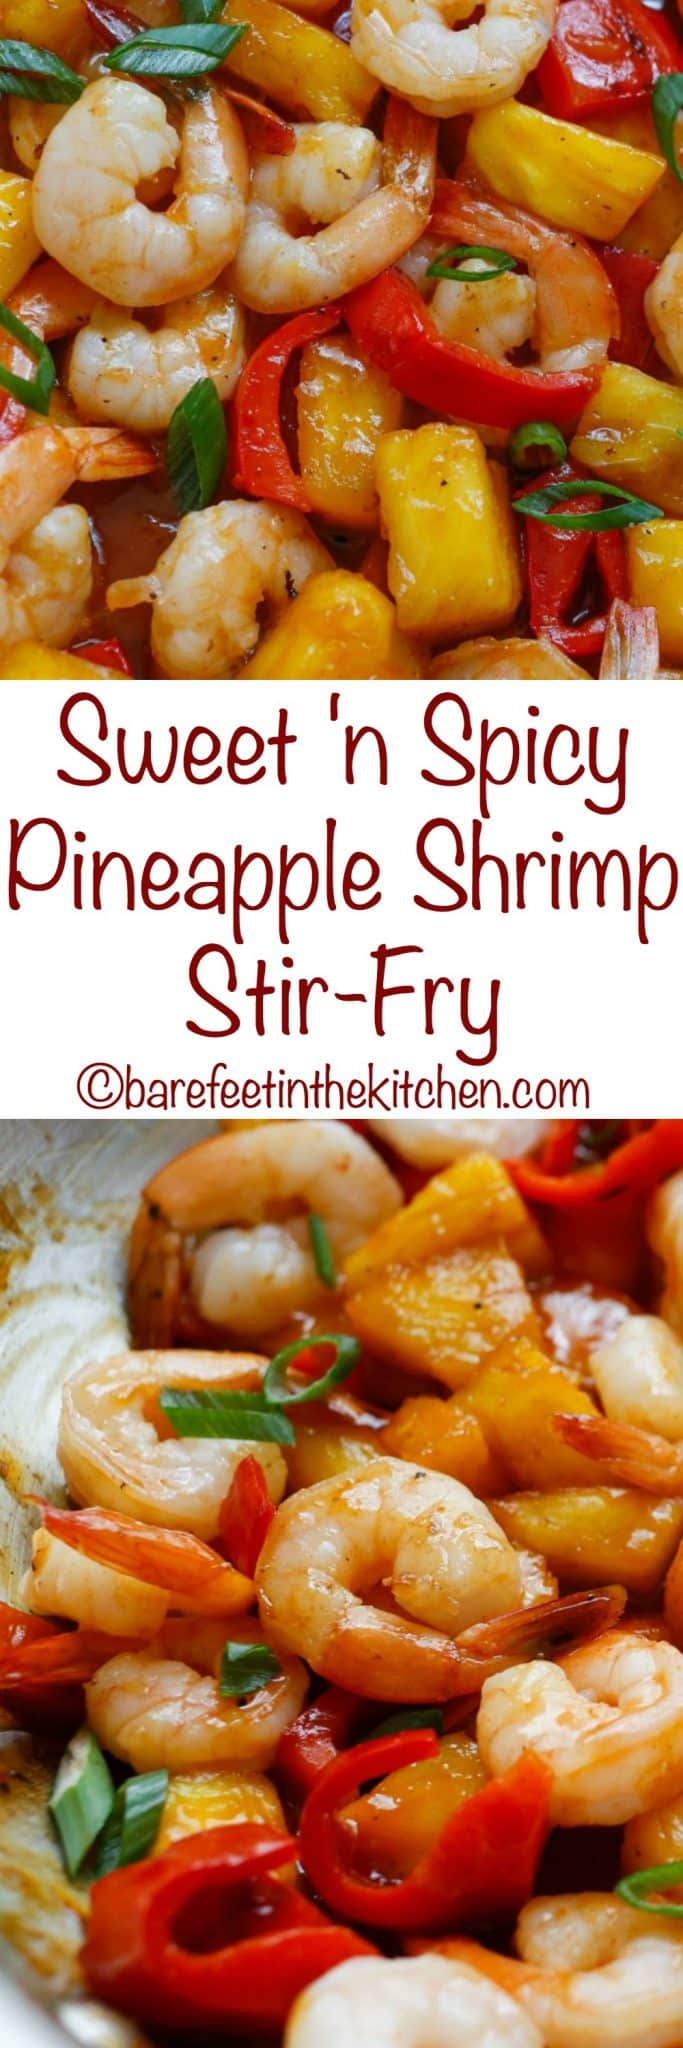 Sweet and Spicy Pineapple Shrimp Stir Fry | barefeetinthekitchen.com